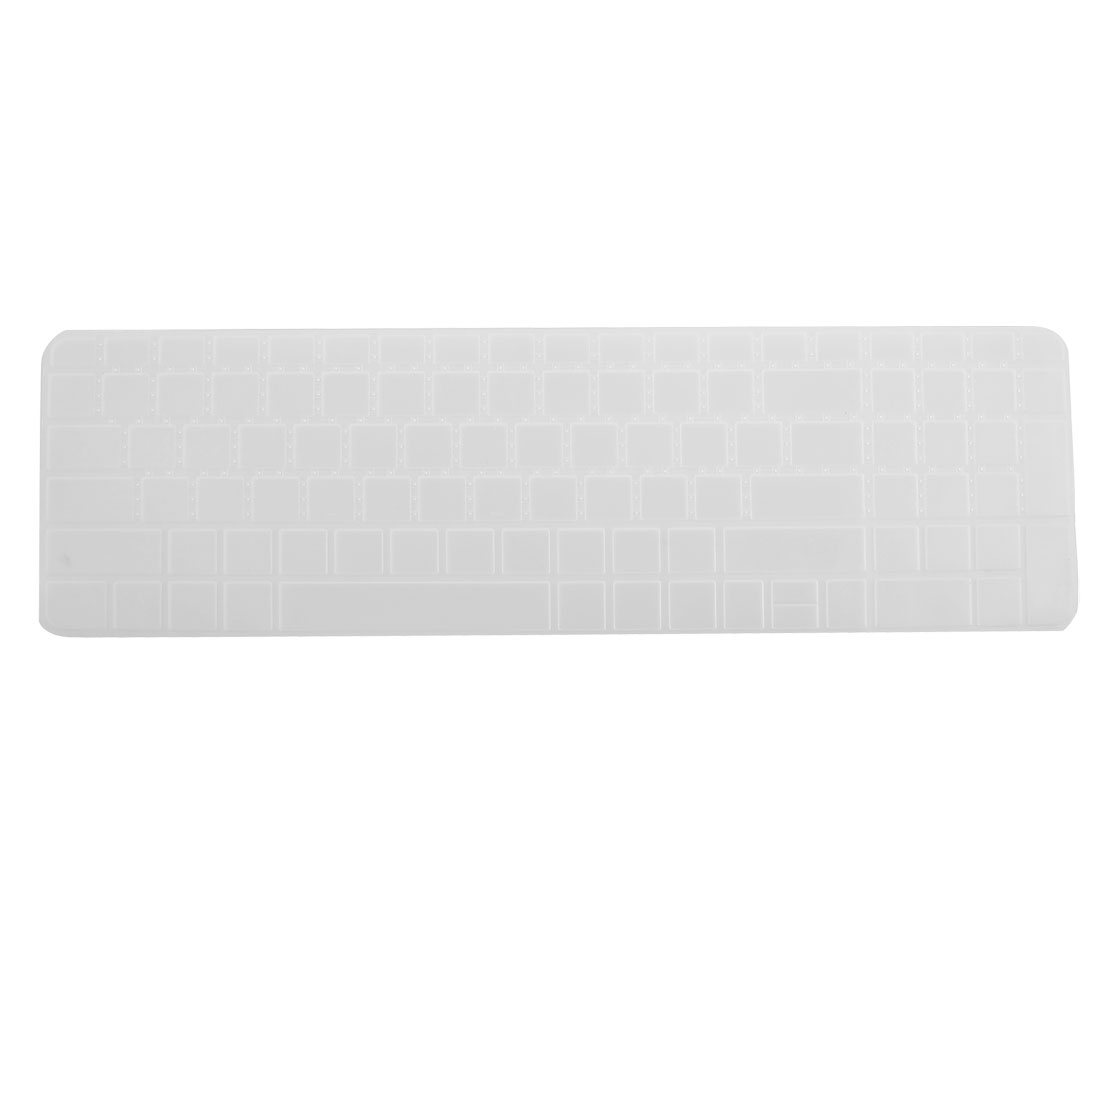 Clear White Silicone Keyboard Protective Cover Film for New HP Pavilion DV6